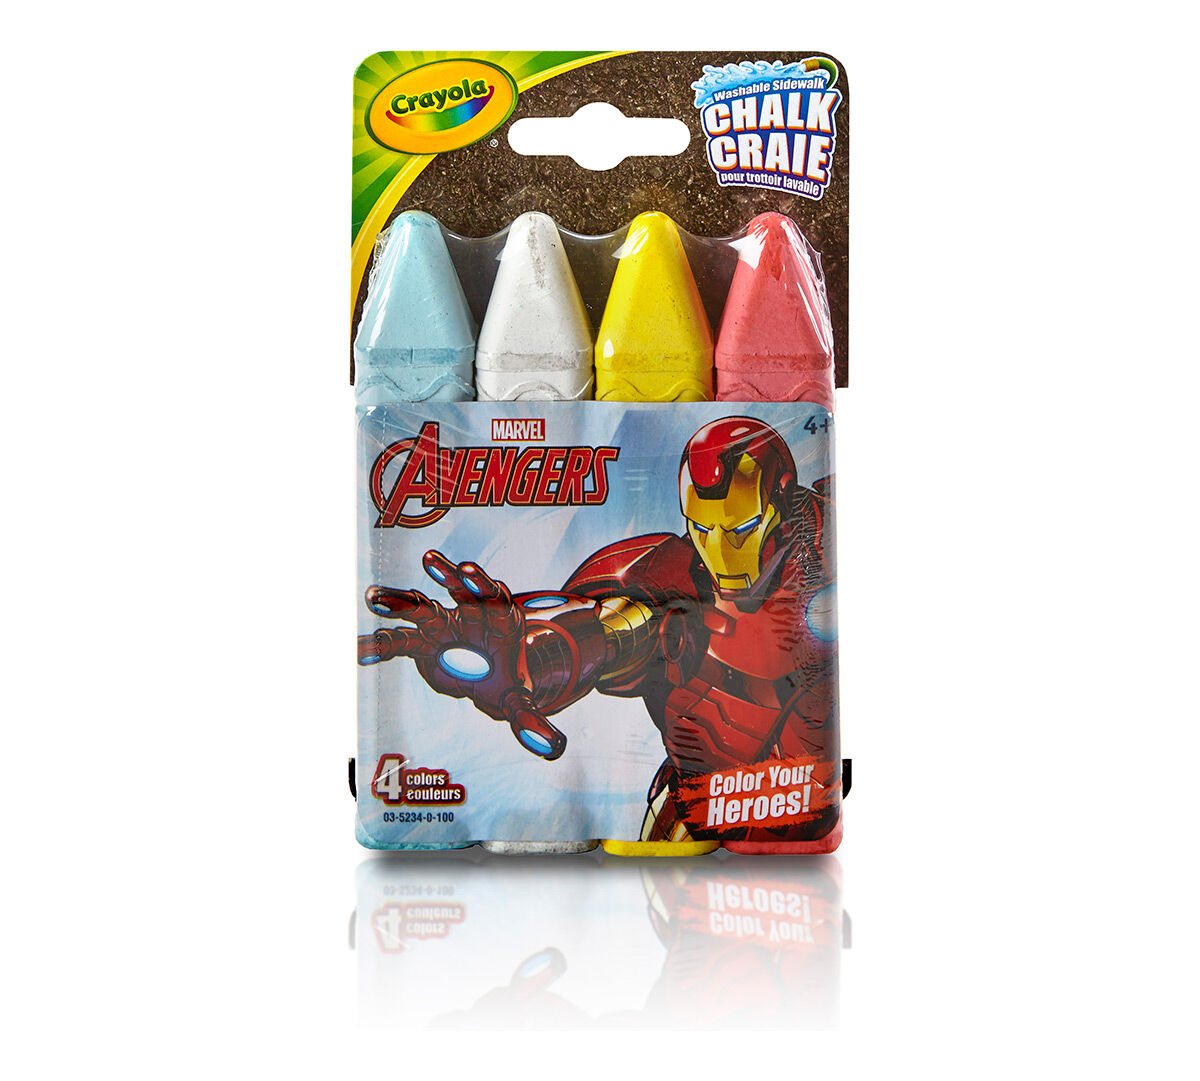 iron man washable sidewalk chalk color your heroes